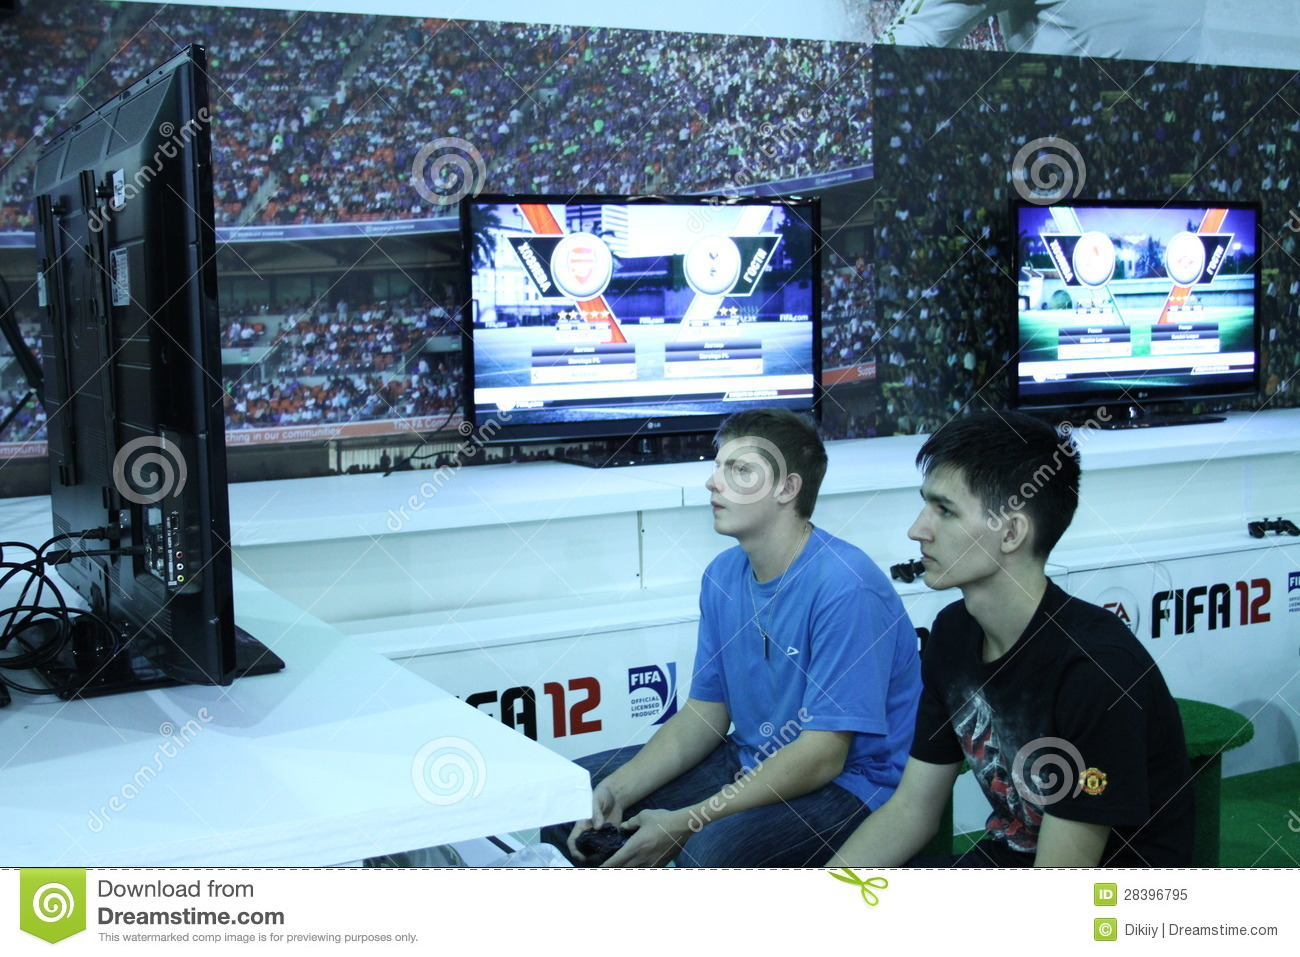 Influence of computer games on young